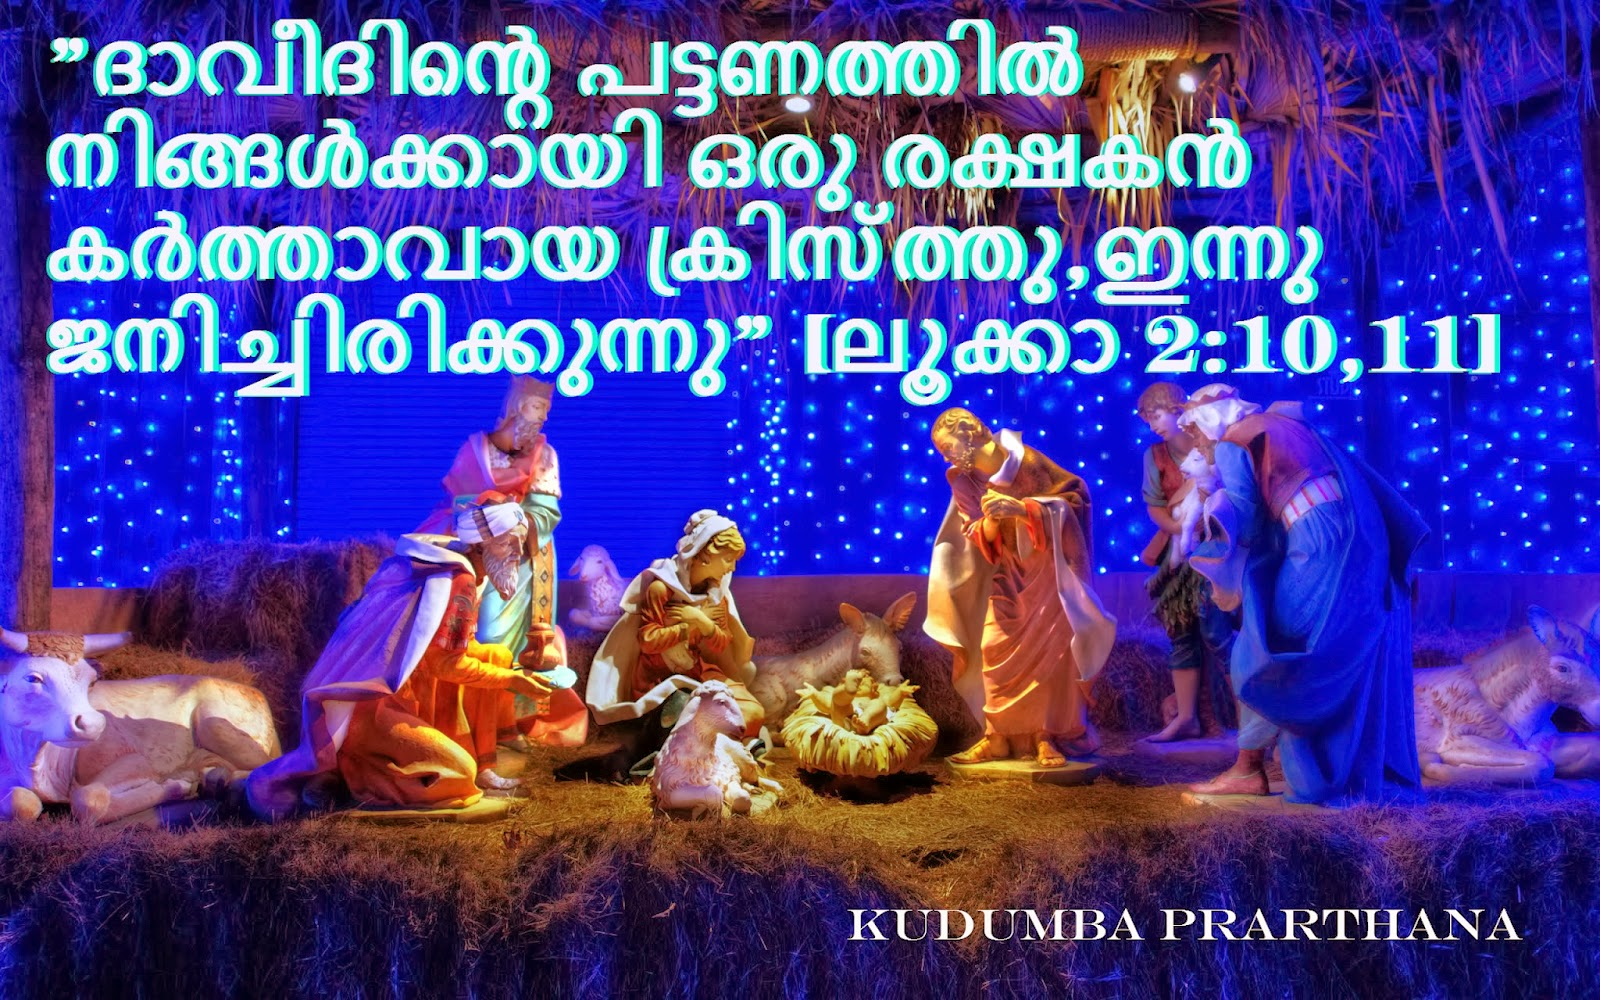 CHRISTMAS WALLPAPER MALAYALAM